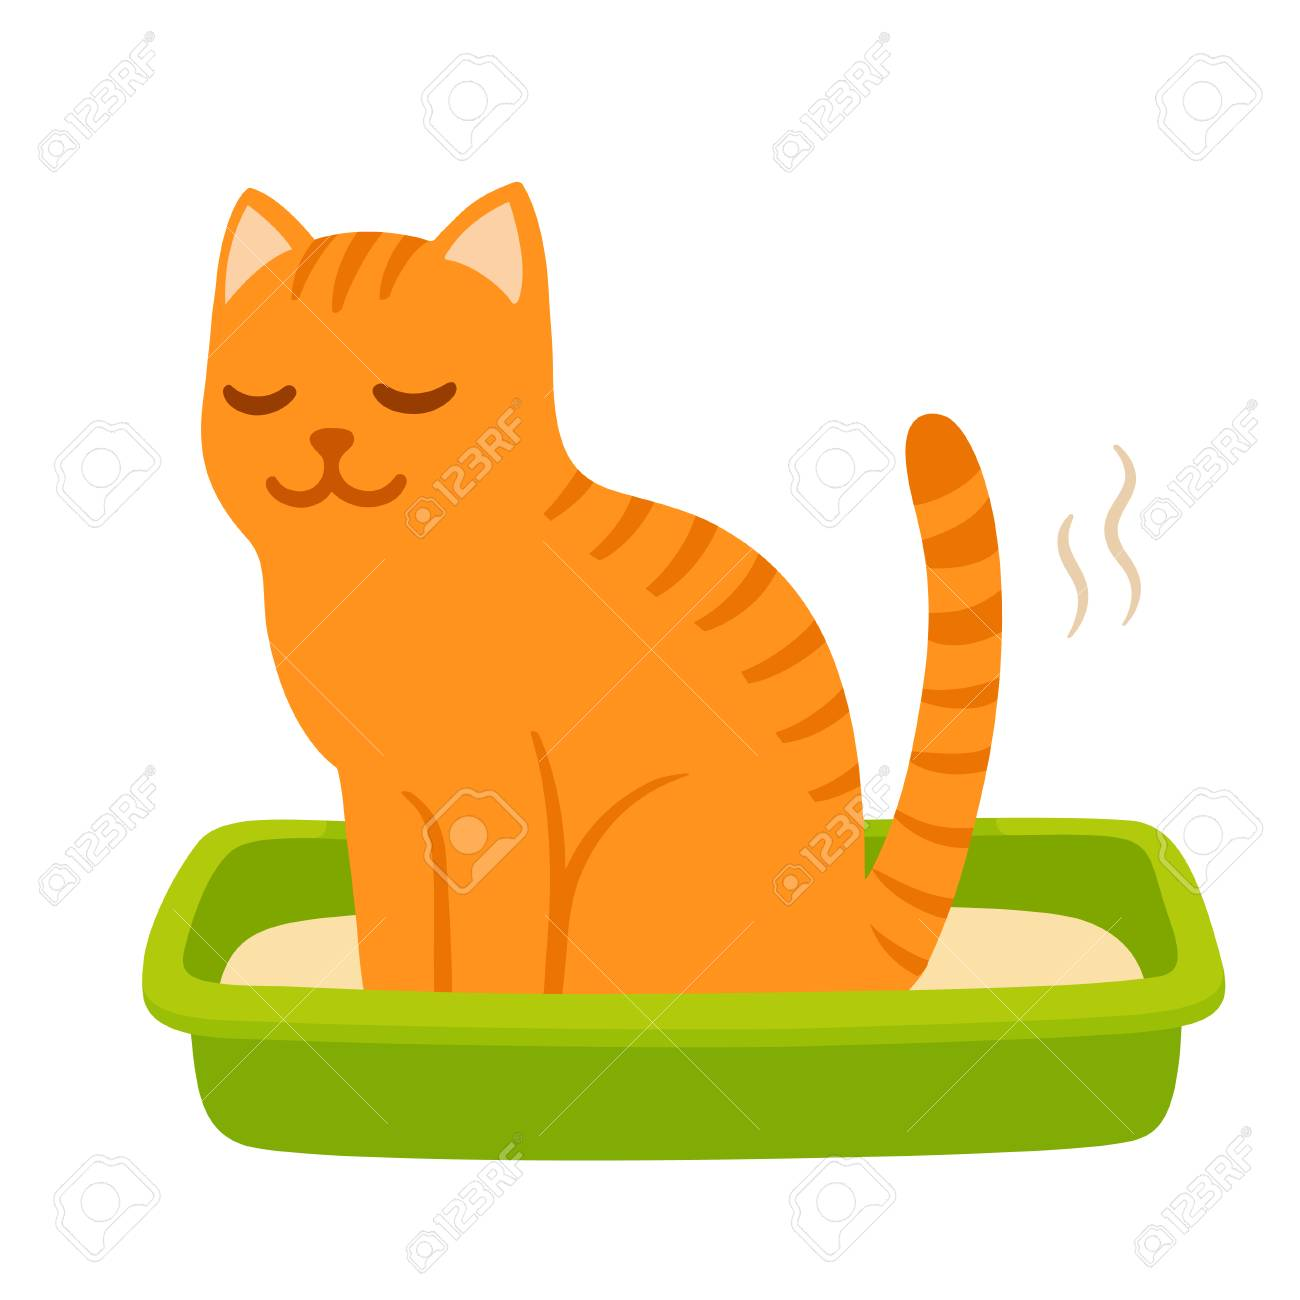 Cartoon Cat Pooping In Litter Box Cute And Funny Kitty Drawing